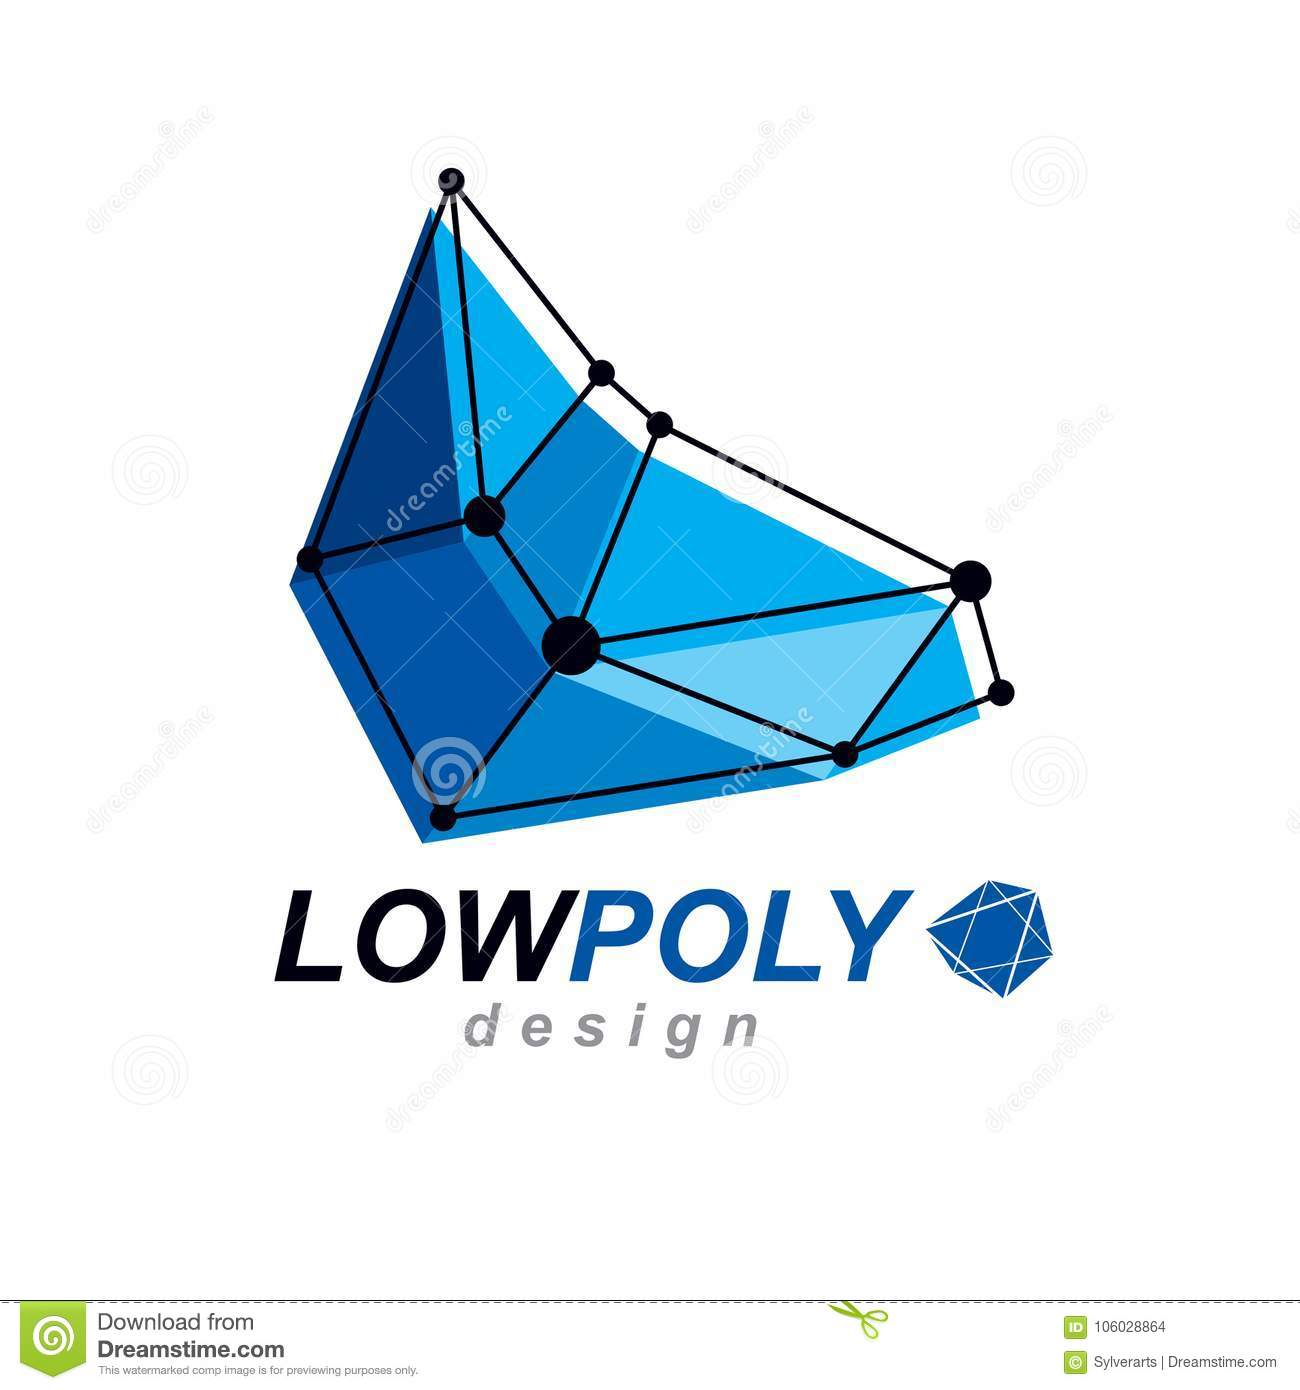 3d Origami Abstract Mesh Object Vector Design Element Diagram Free Download Preview